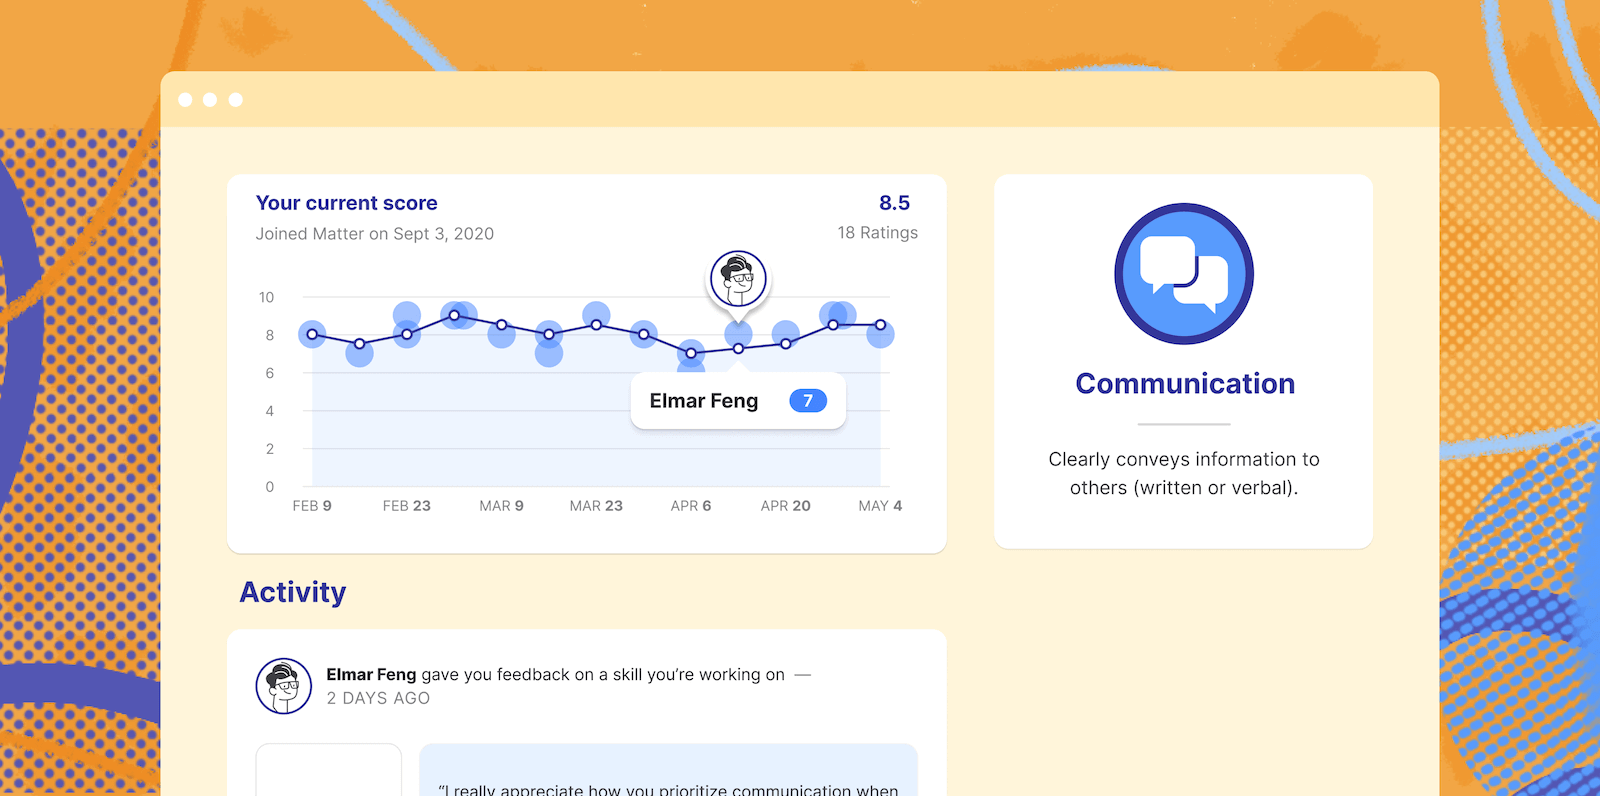 New Feature: Analytics for your feedback and skills is here!